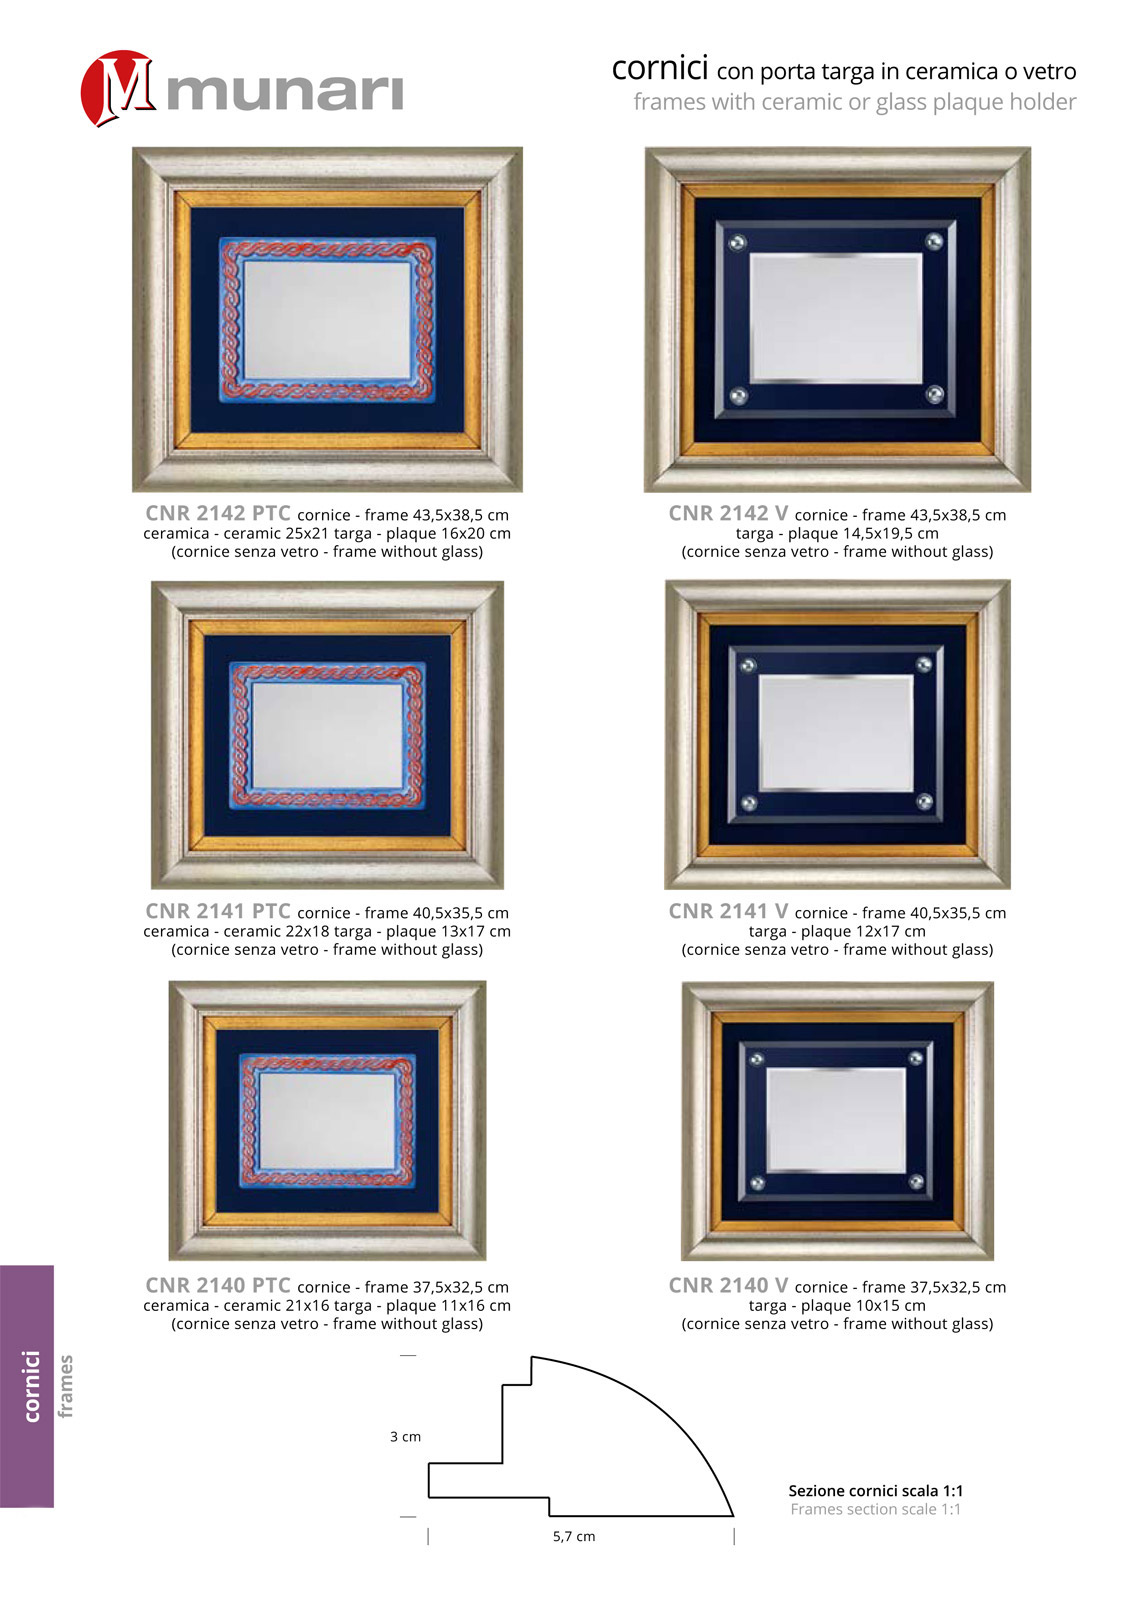 PVC frames with glass and plaque series CNR 2140 V